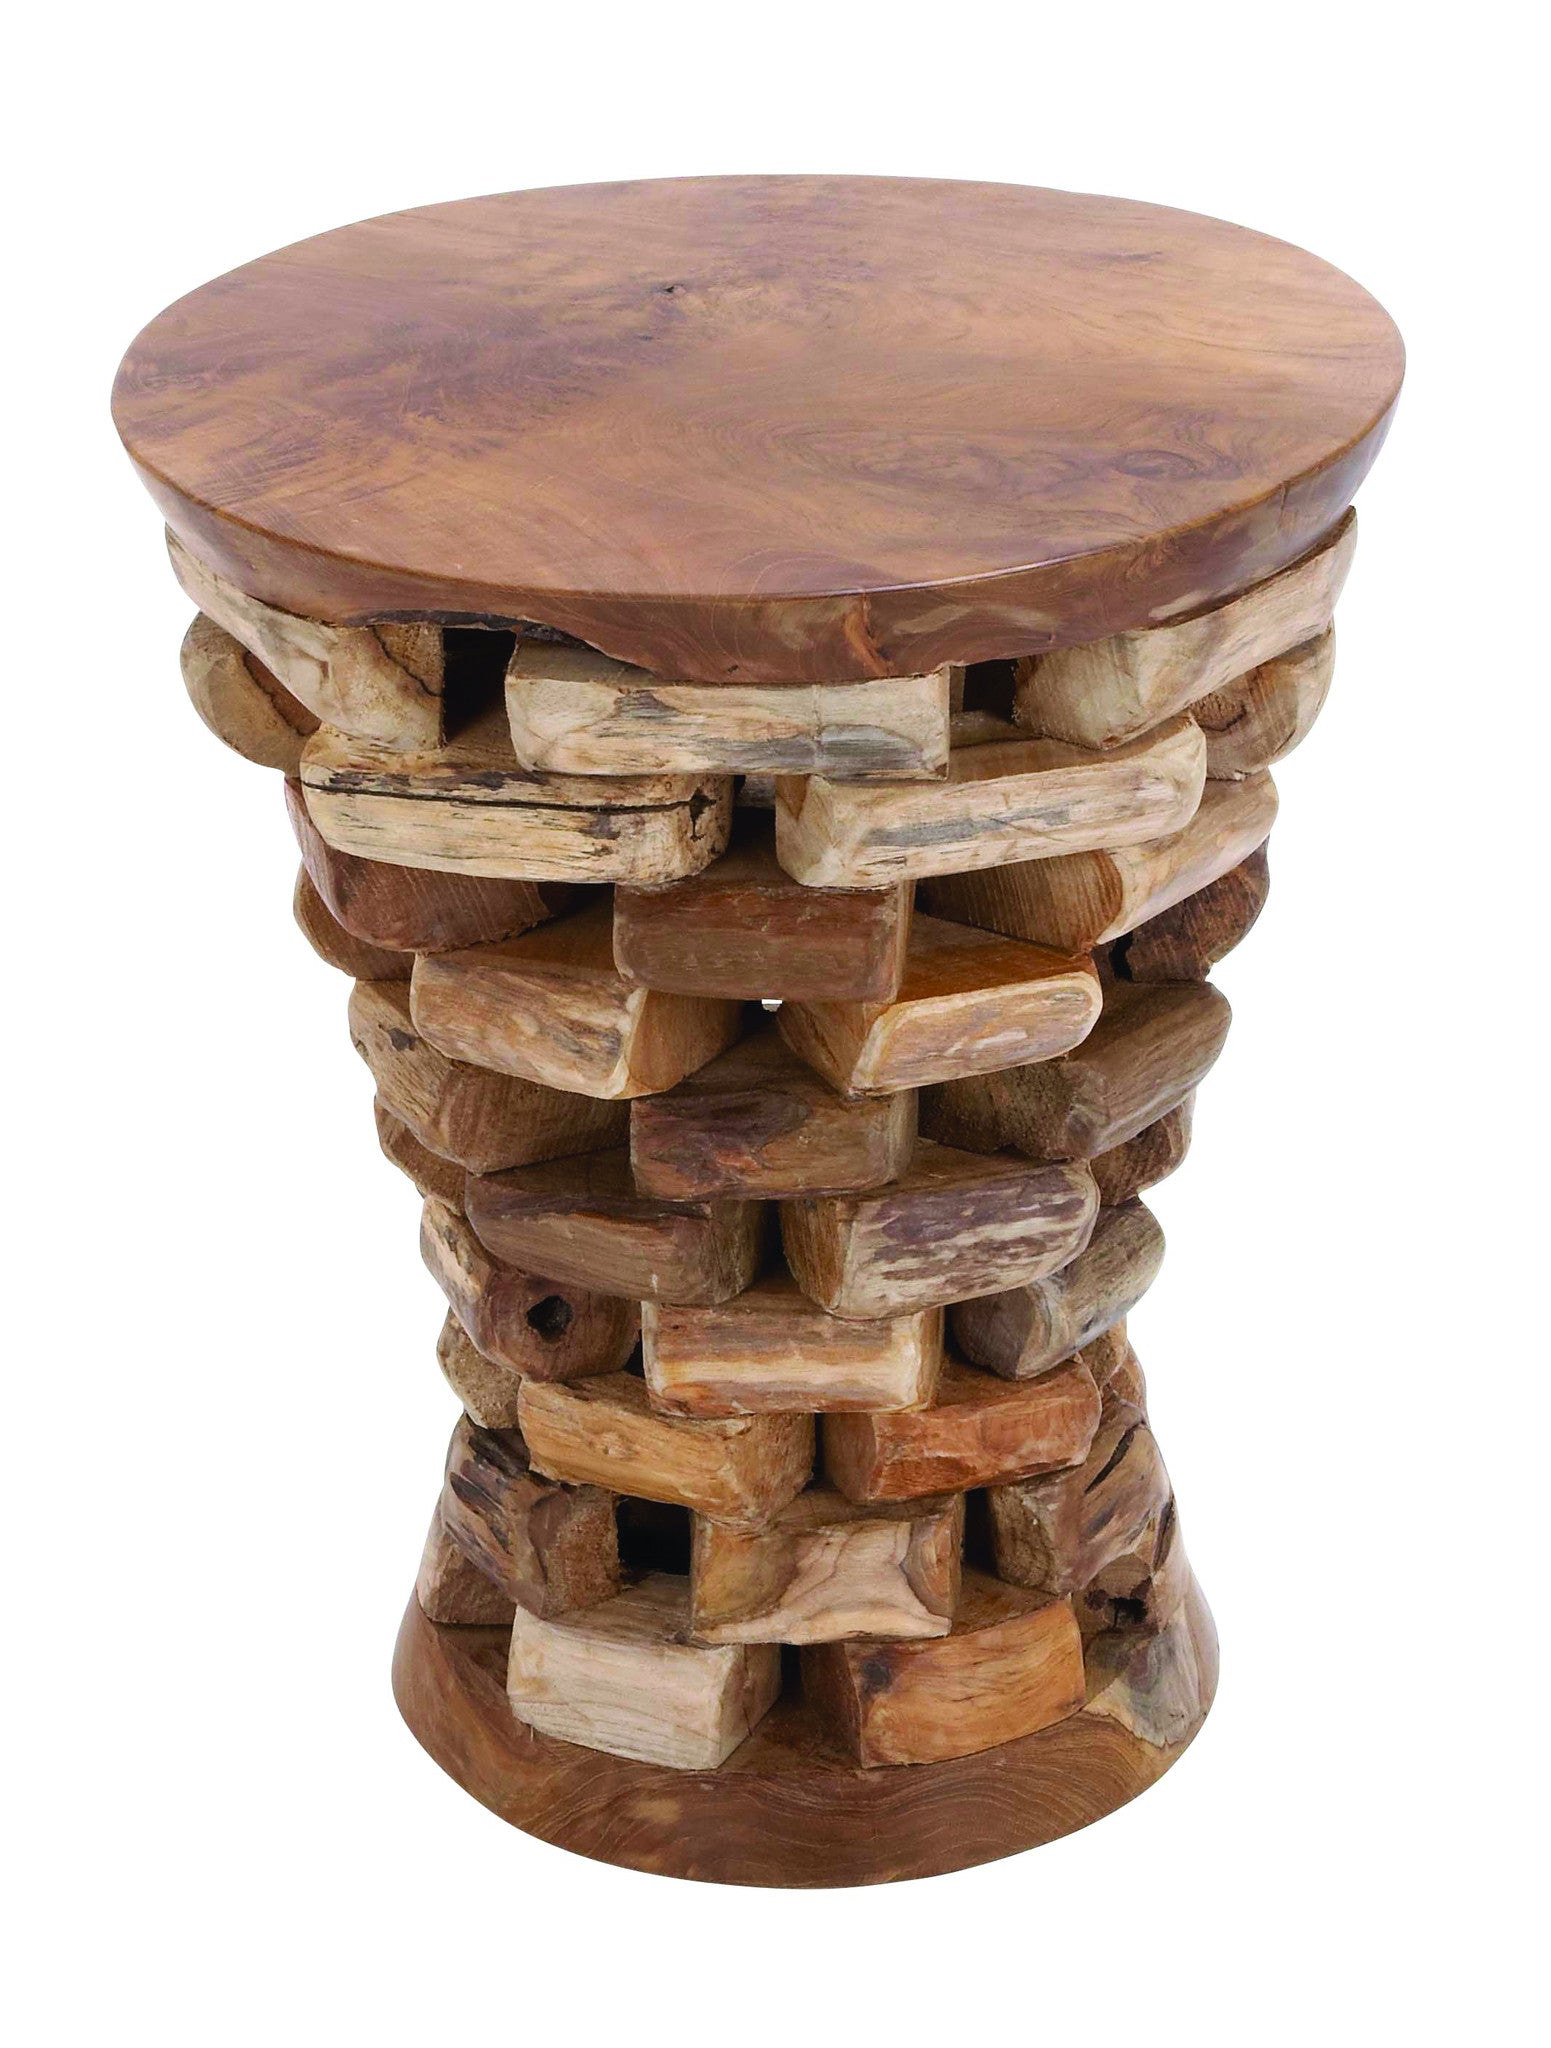 - Round Shaped Teak Wooden Accent Table In Natural Rich Textures